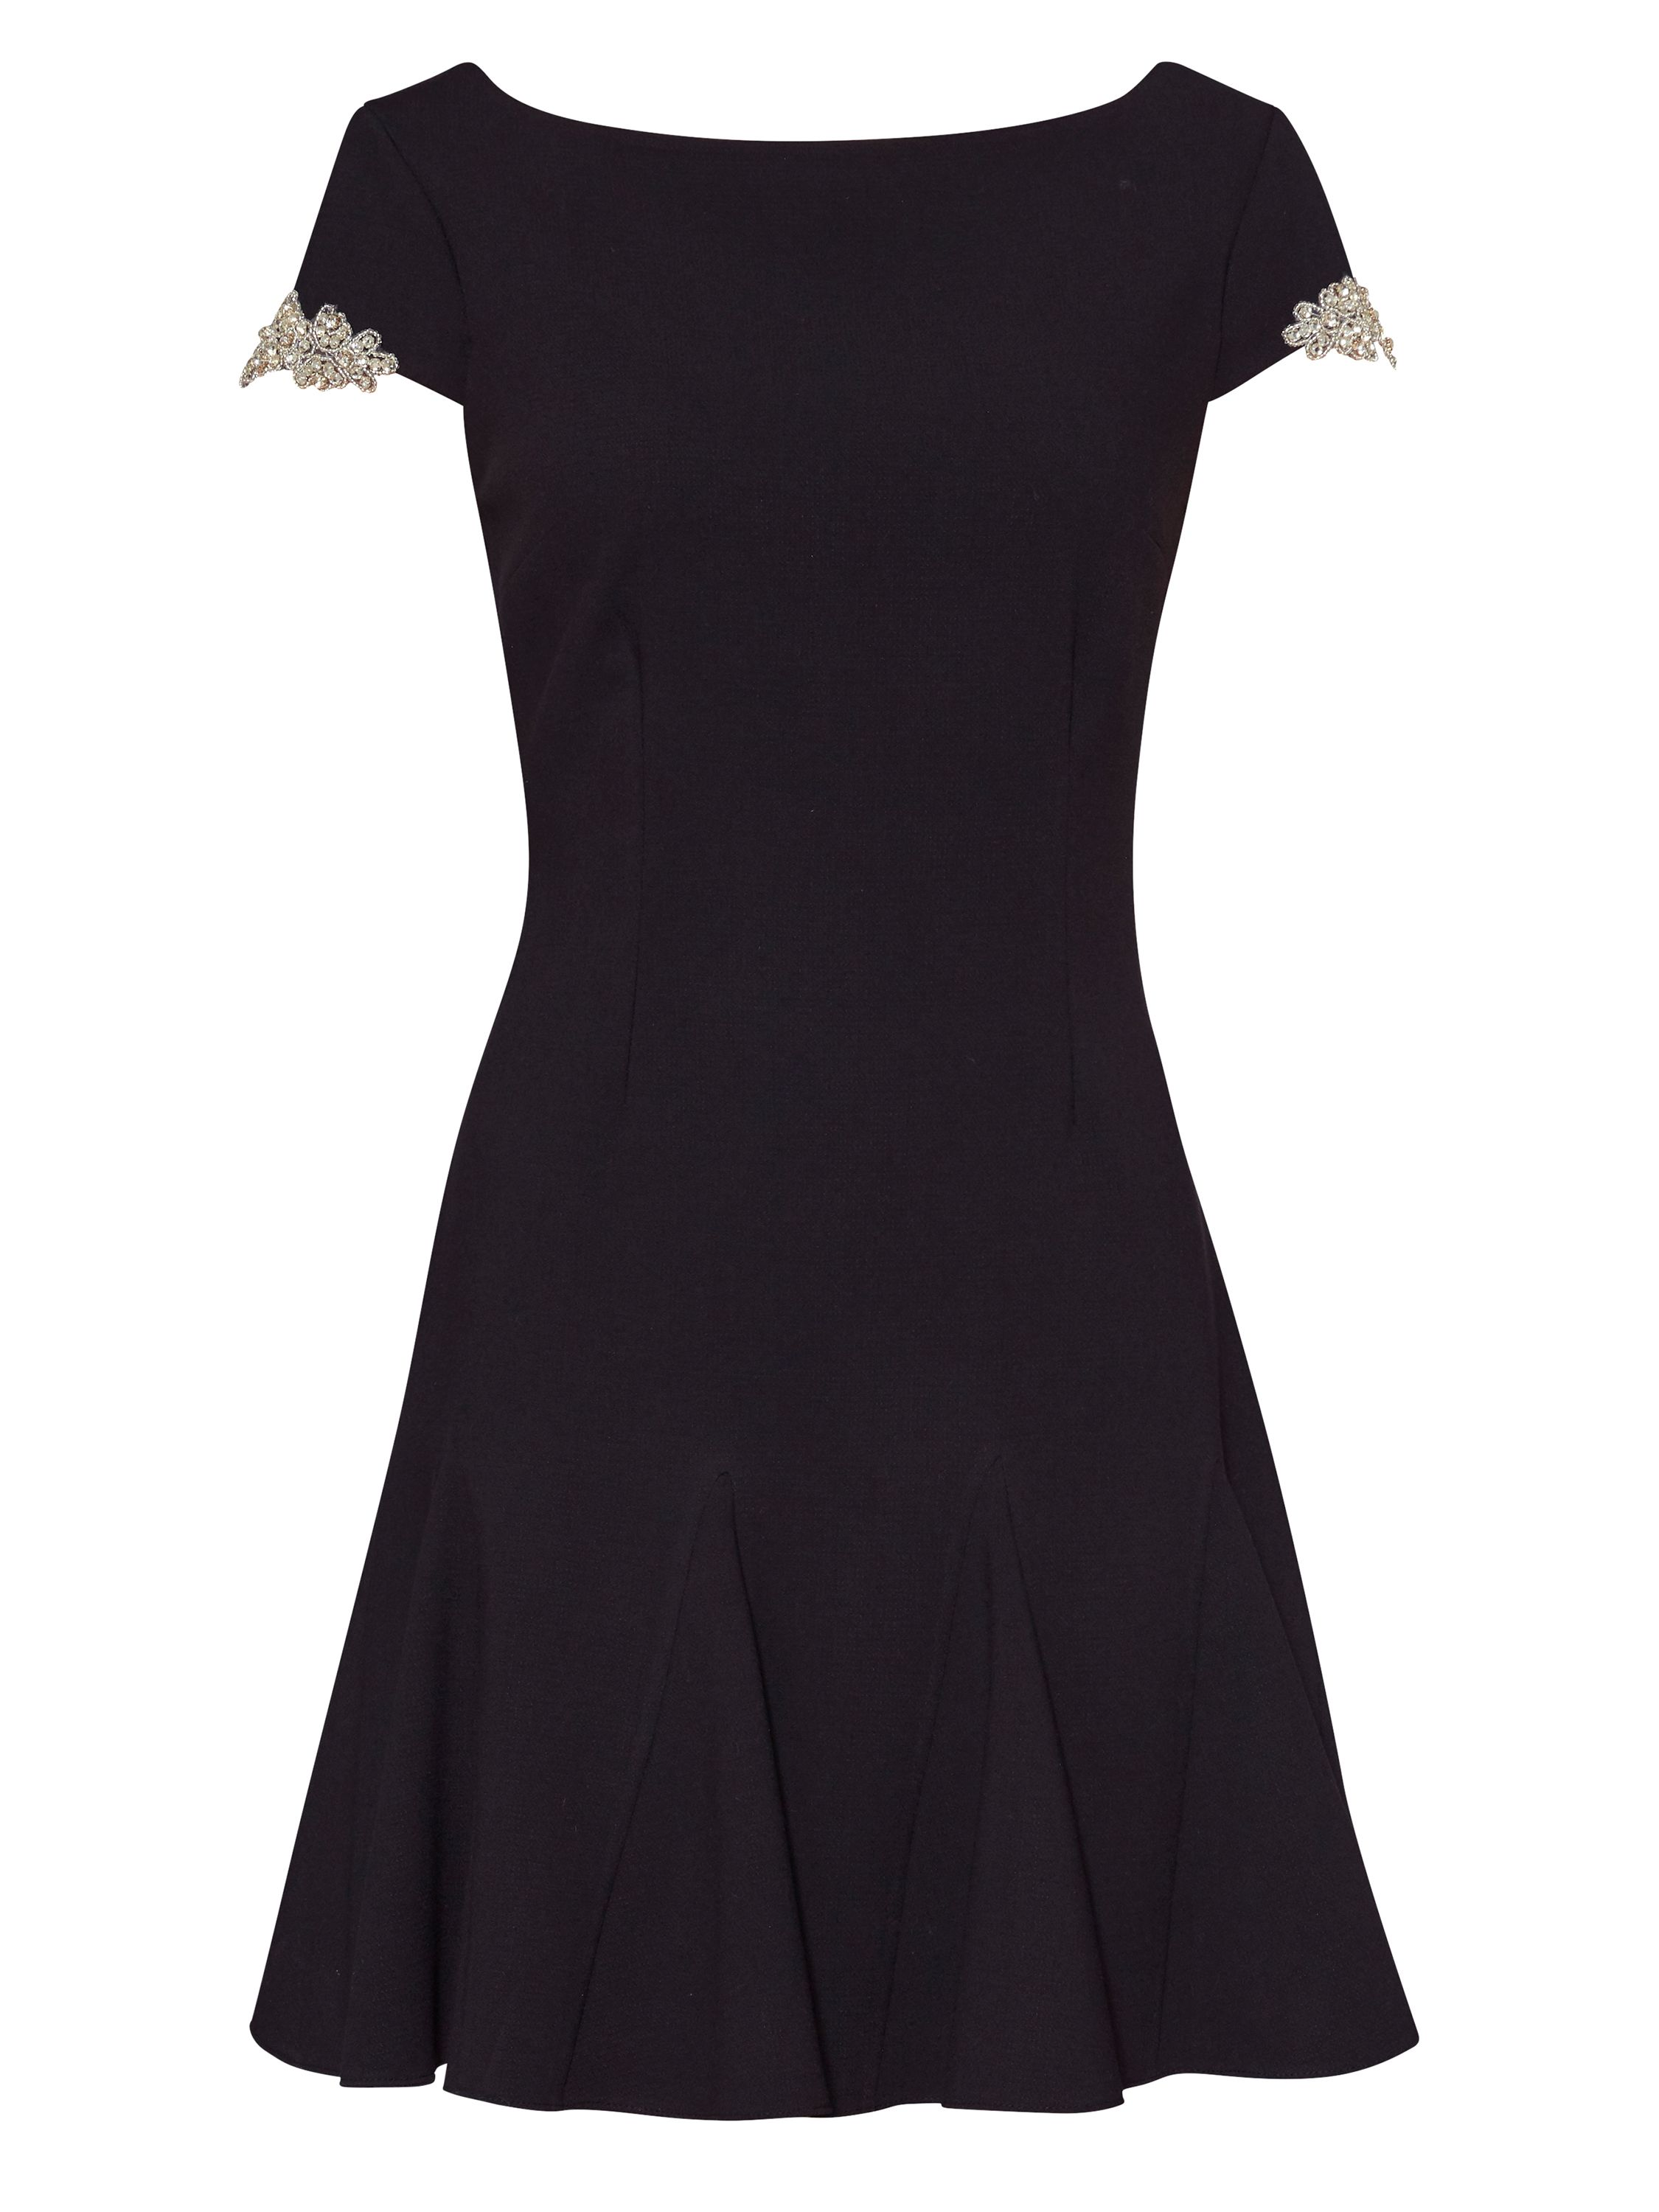 Gina Bacconi Emma Godet Dress, Black